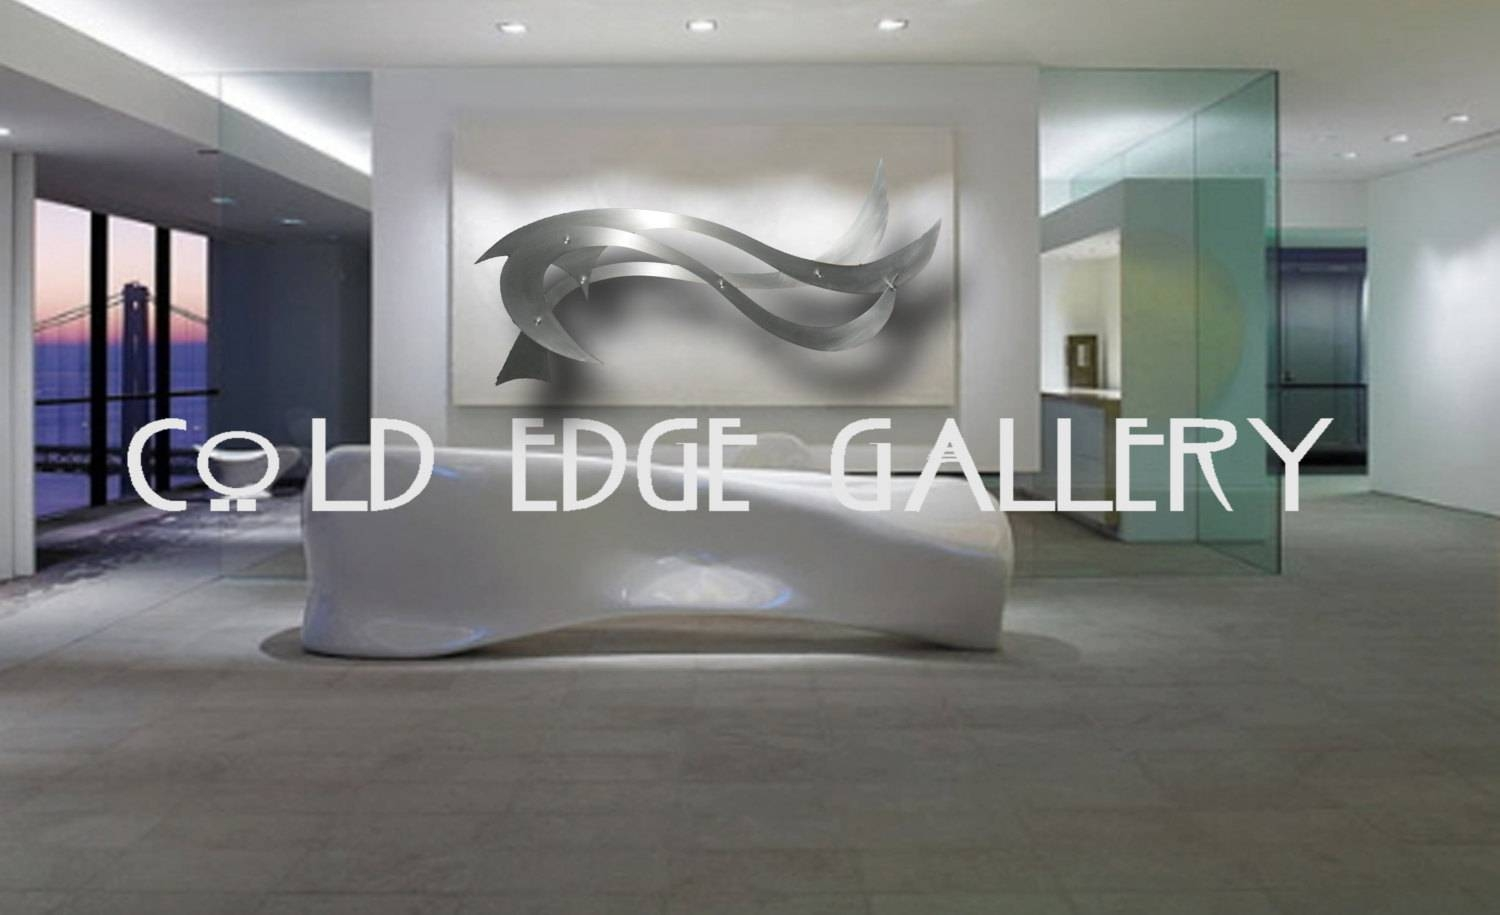 Ocean Breeze Large Metal Wall Art Corporate Wall Art Extra With Regard To Most Current Contemporary Metal Wall Art Sculptures (View 11 of 20)